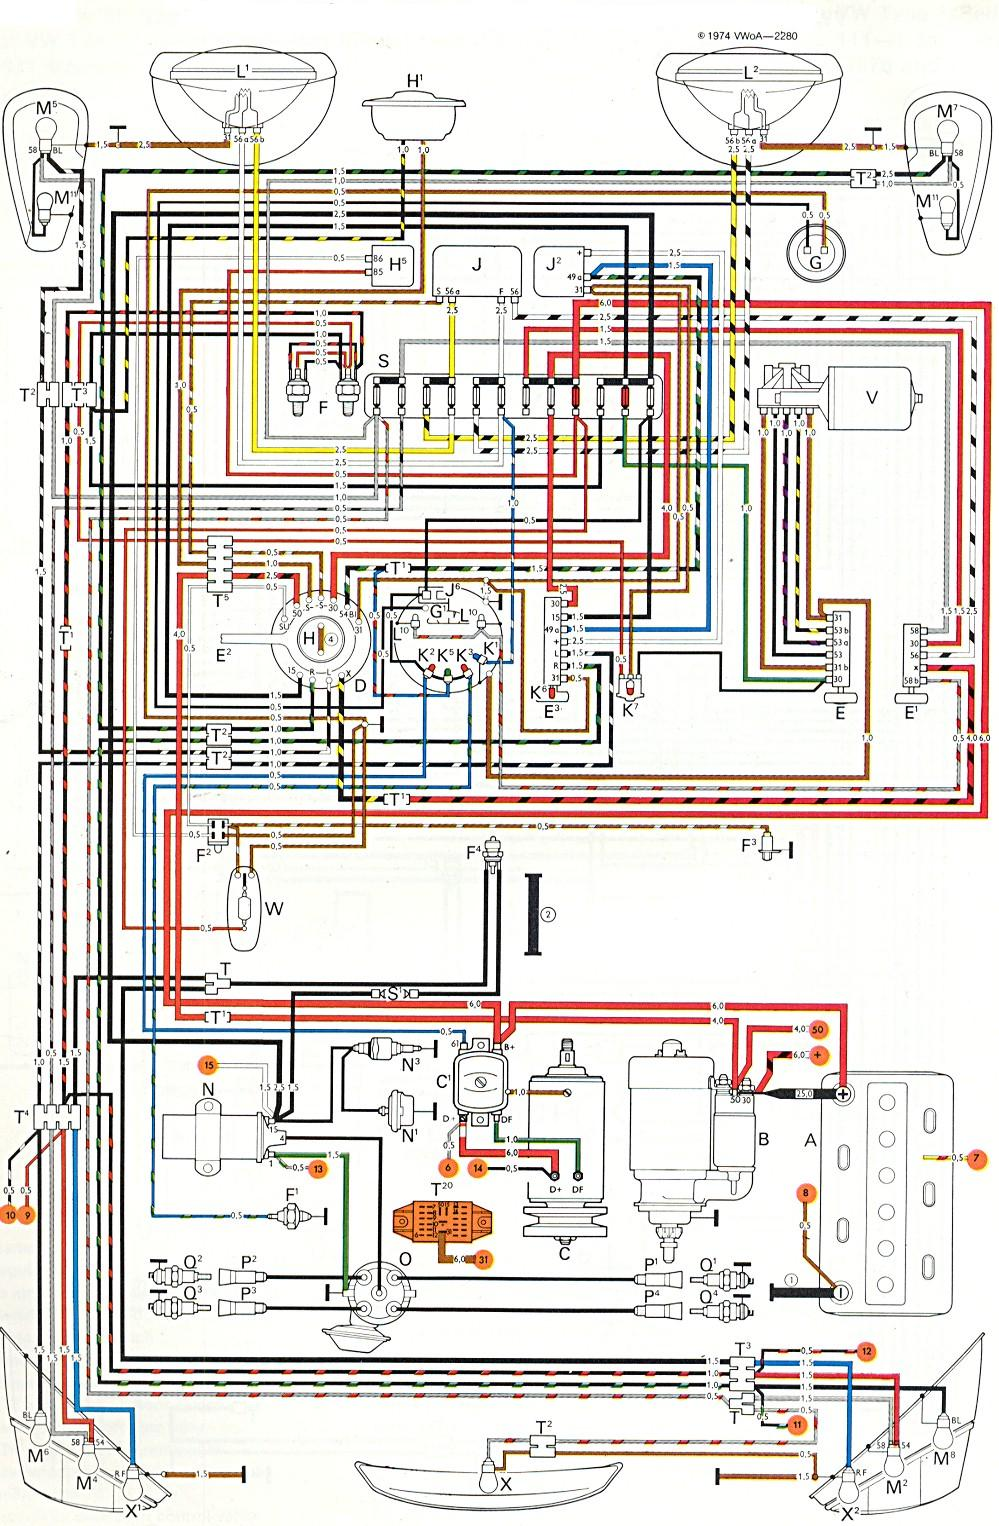 2000 vw new beetle wiring diagram annavernon volkswagen 2002 beetle wiring diagram